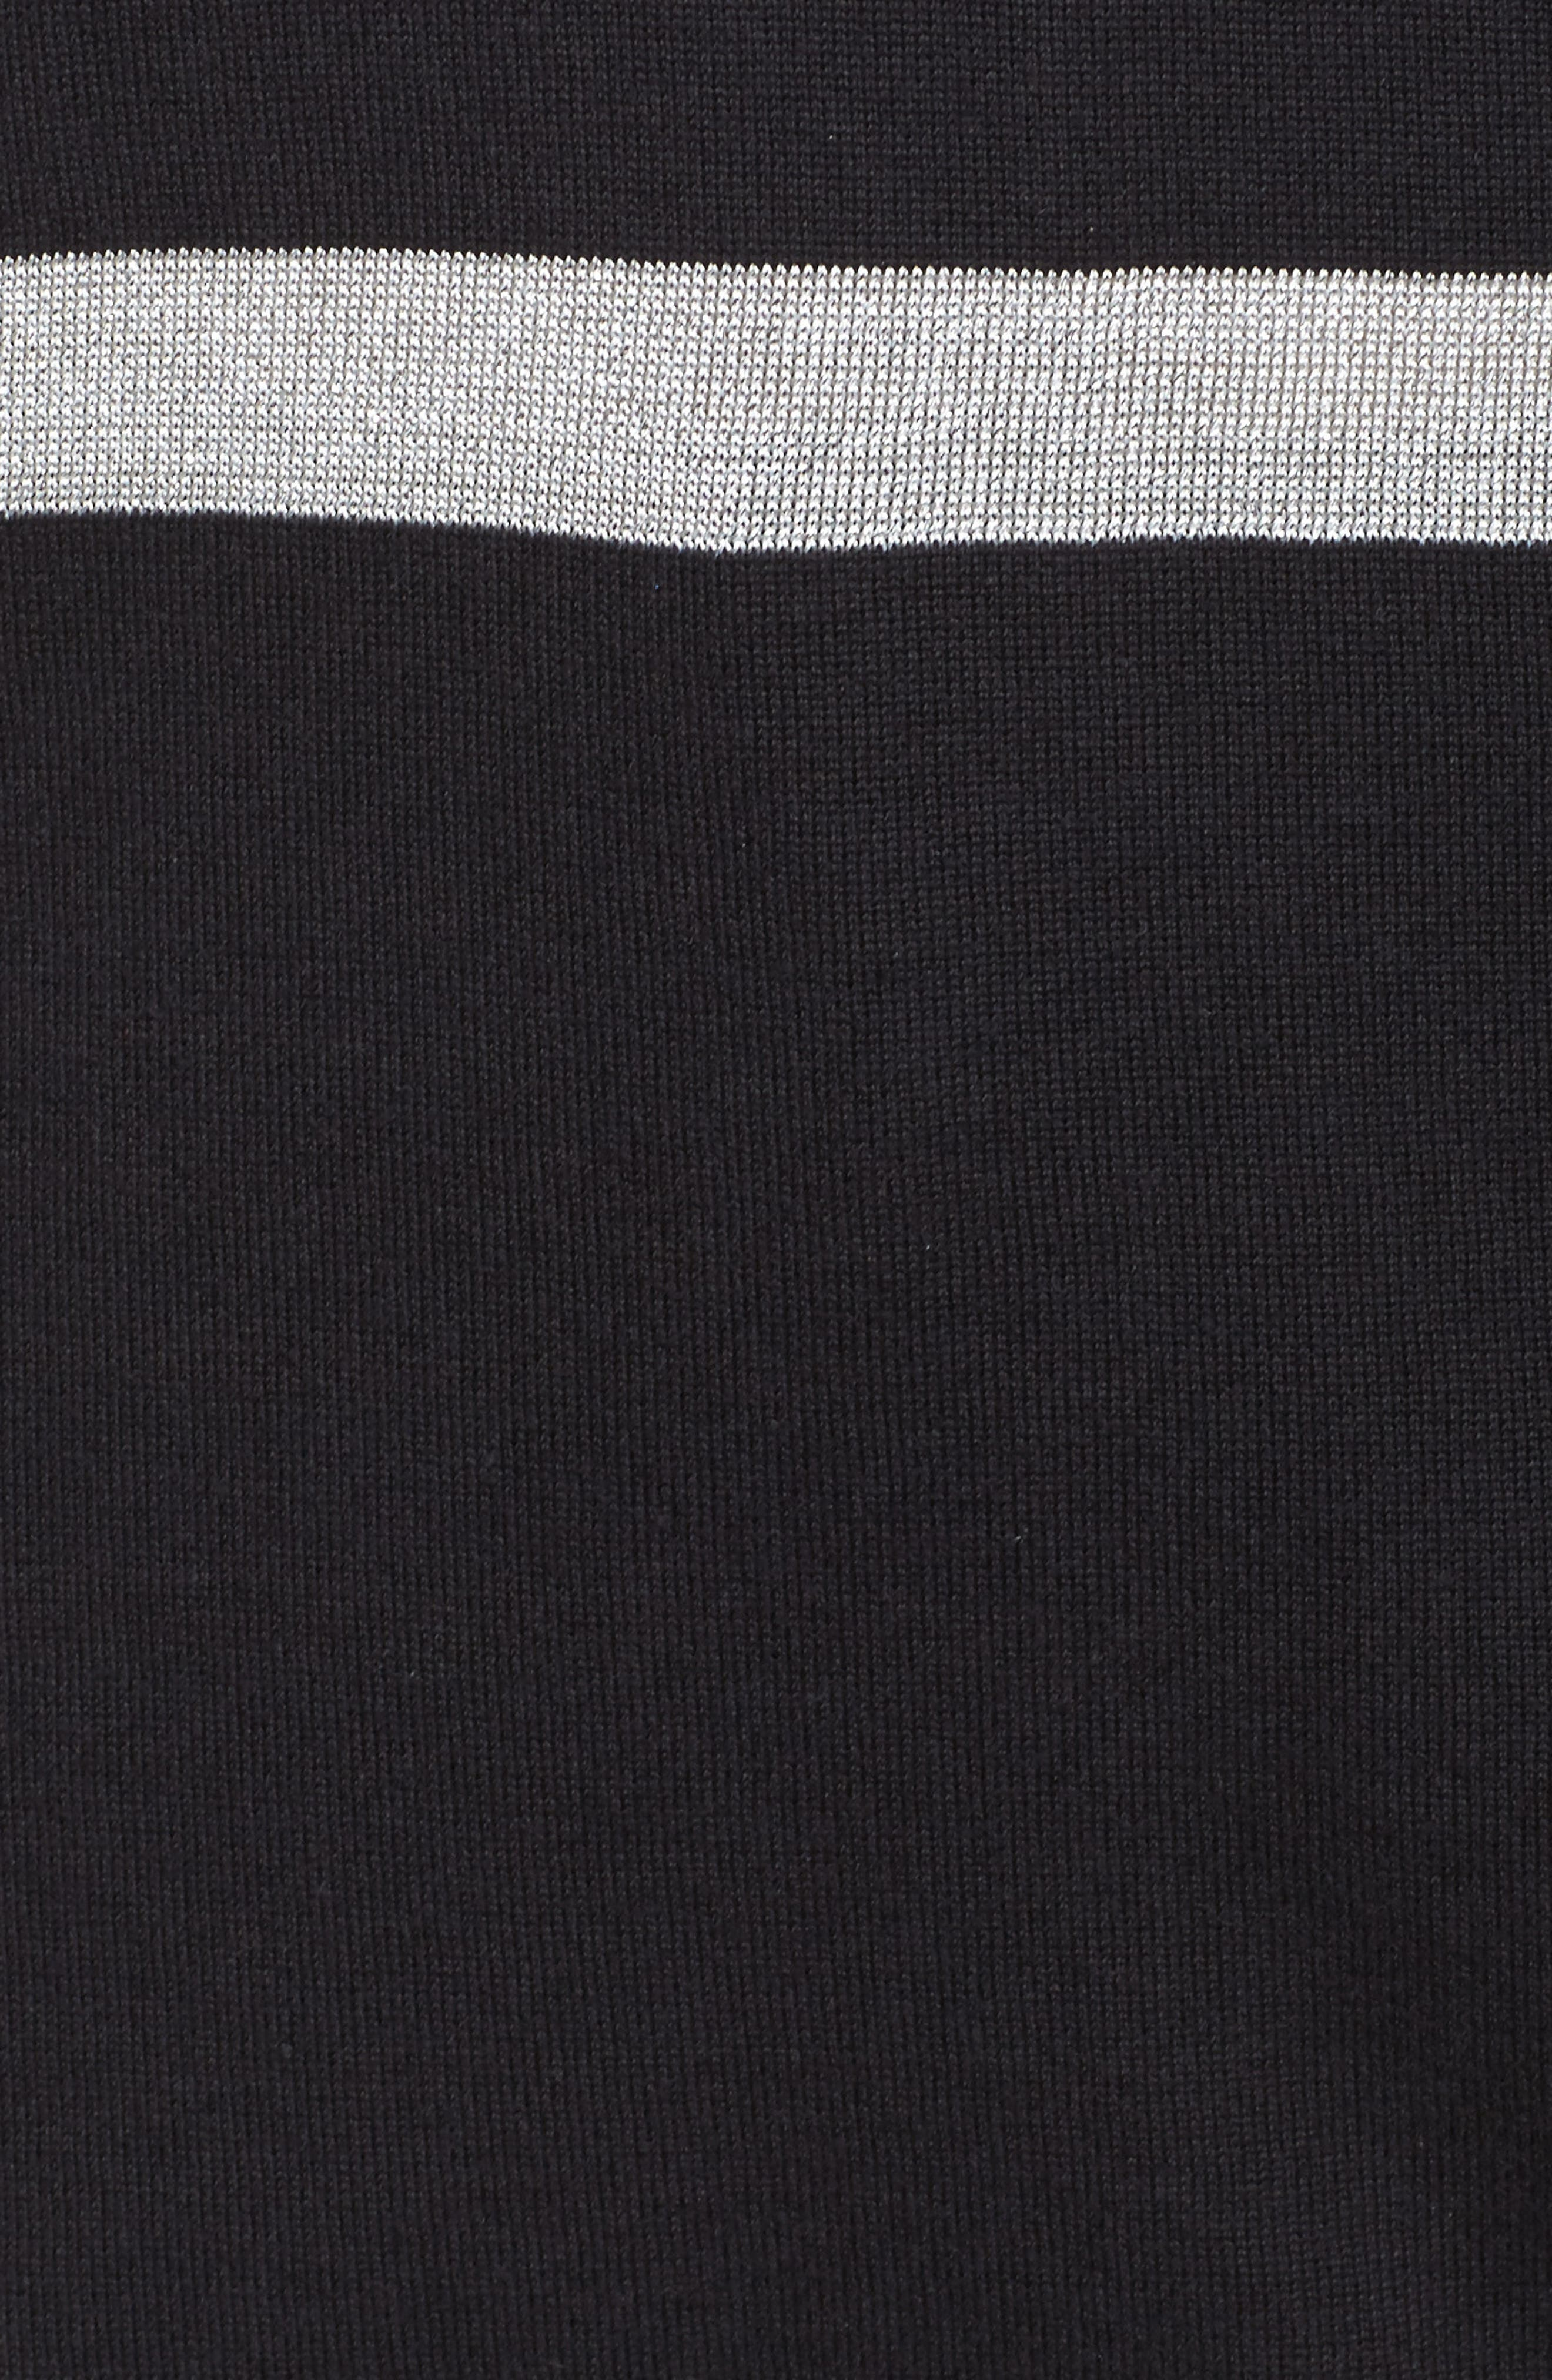 Chain Lace-Up Stripe Sweater,                             Alternate thumbnail 5, color,                             Black